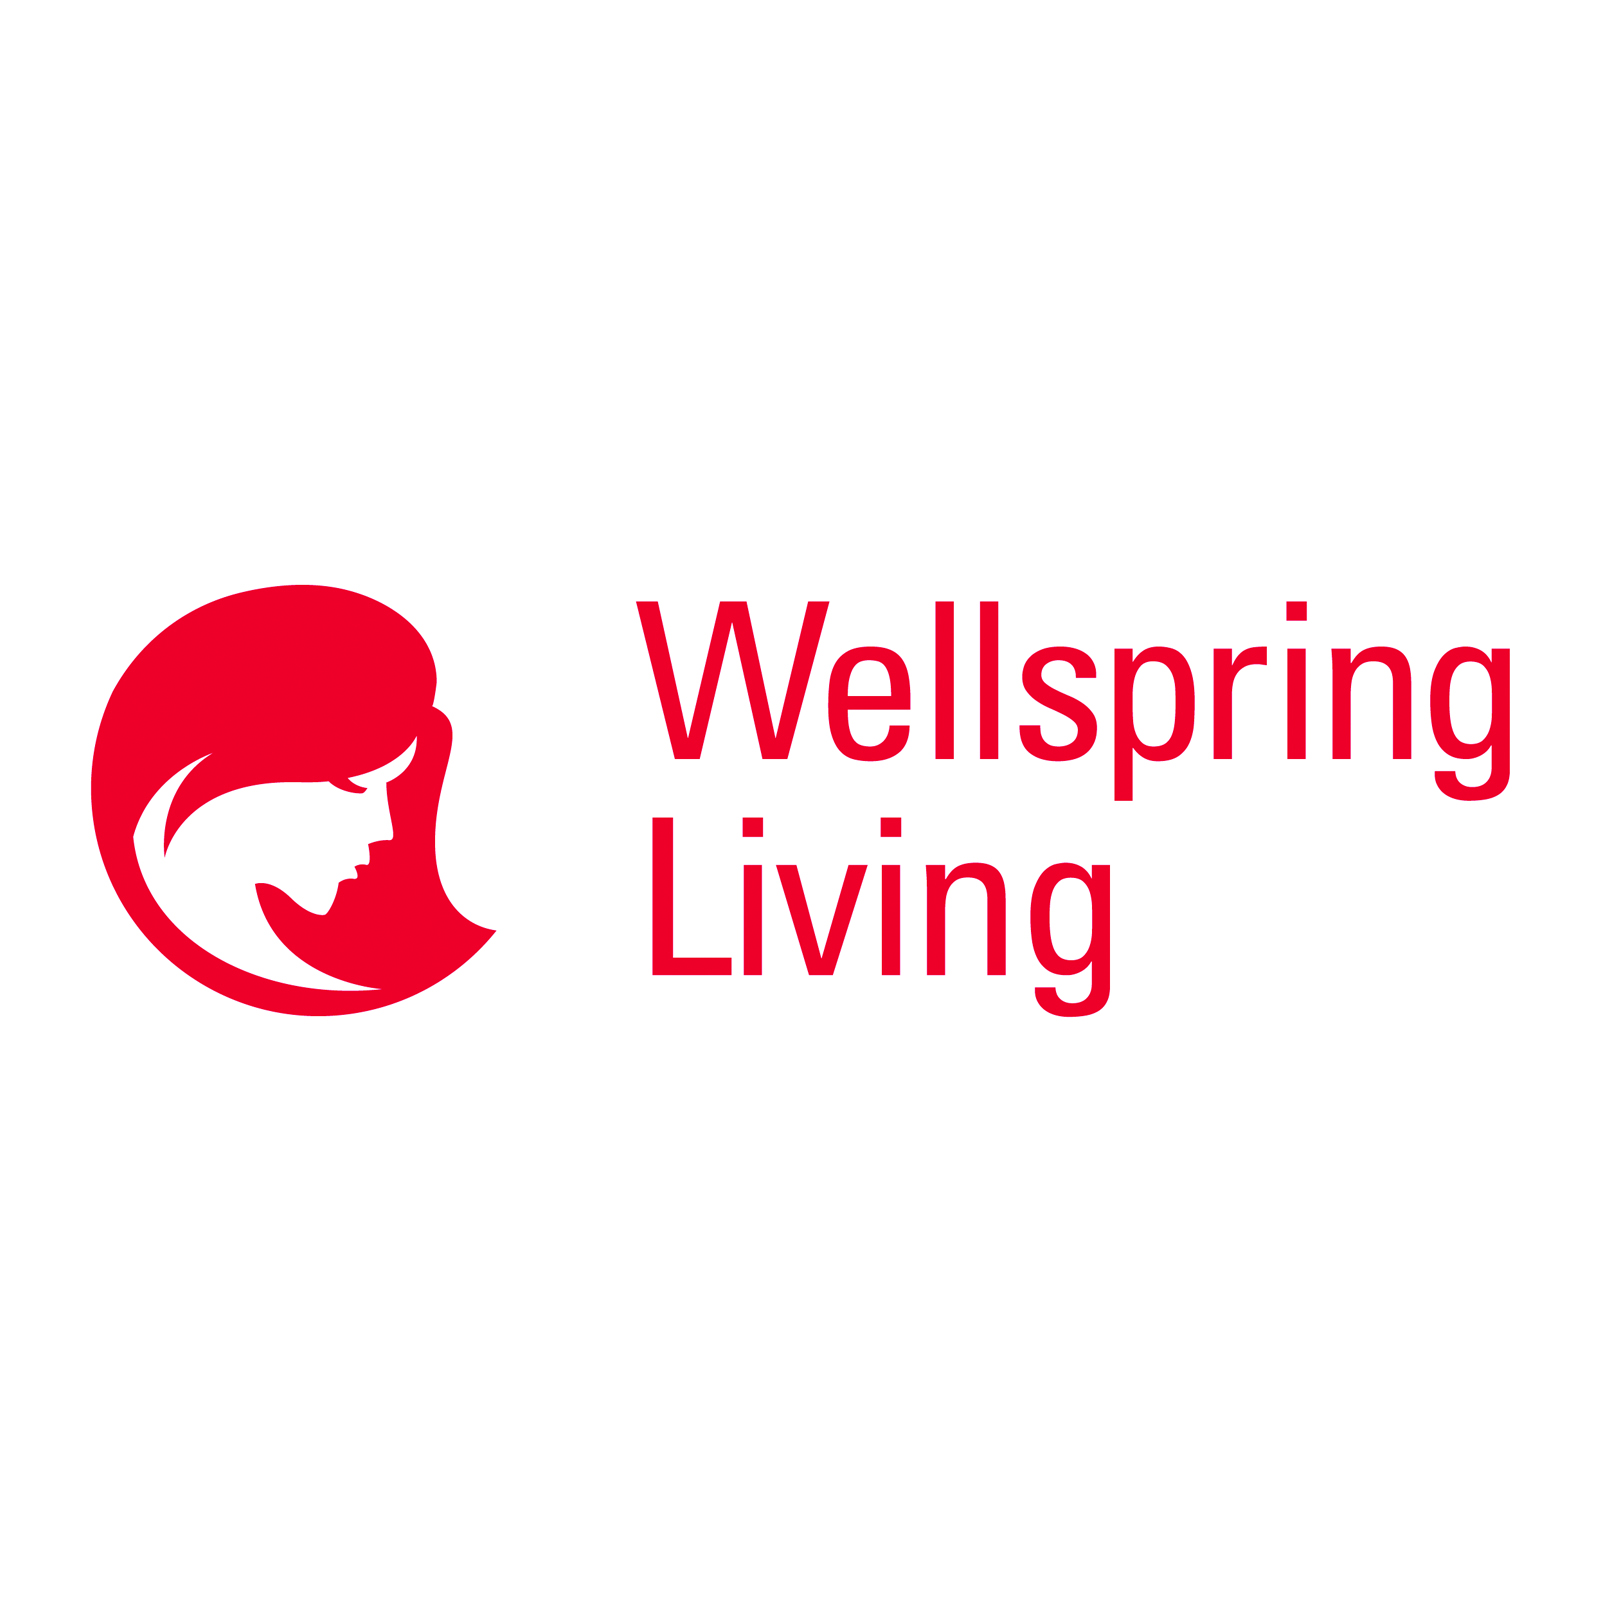 Wellspring Living   Transforming lives of those at risk or victimized by sexual exploitation.   www.wellspringliving.org